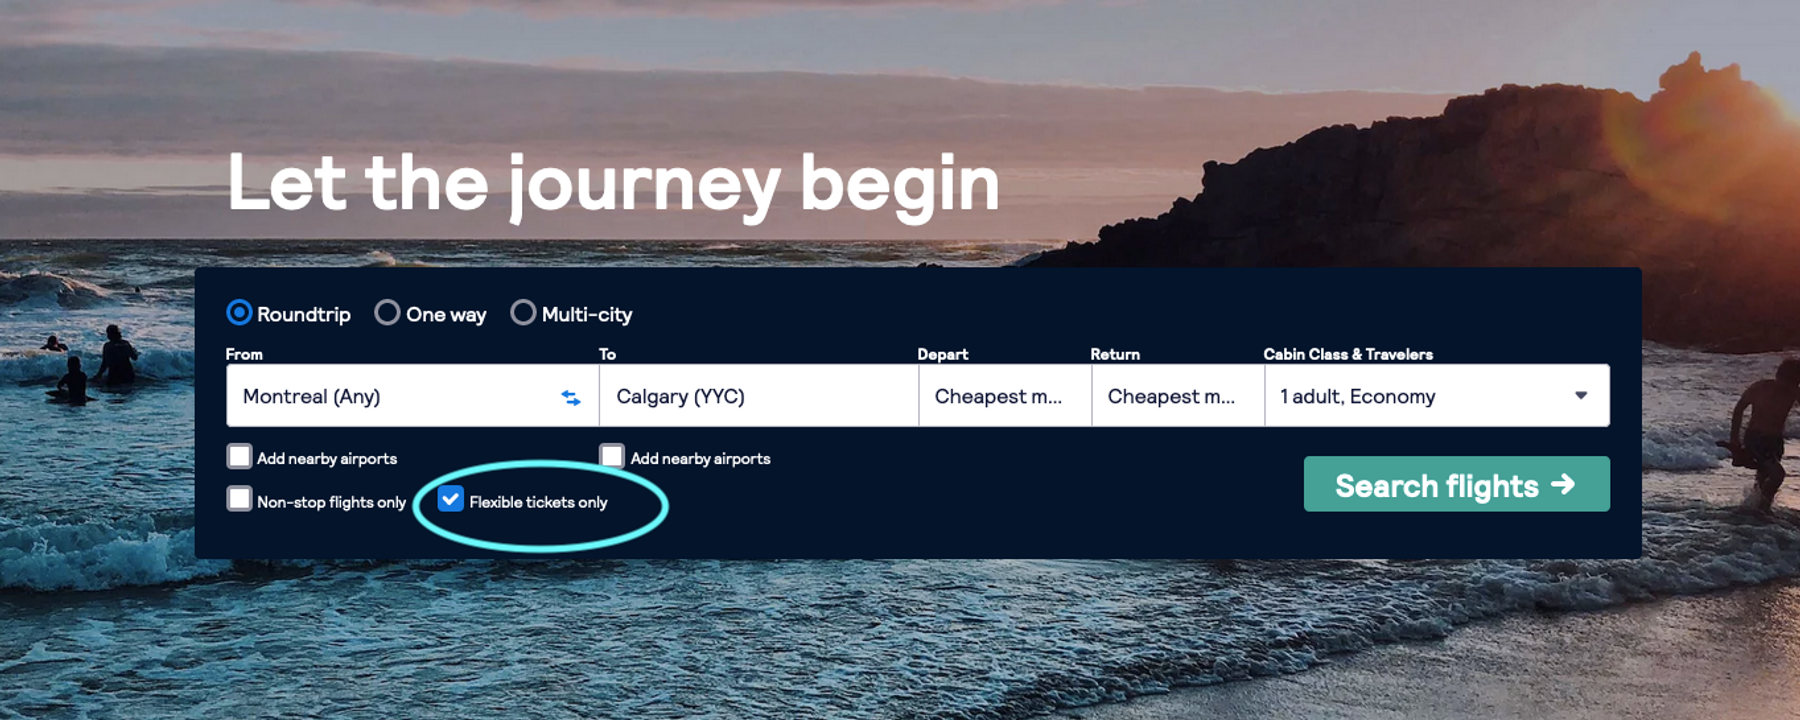 flight search page on skyscanner, tool for booking flexible tickets only for more flexible travel options